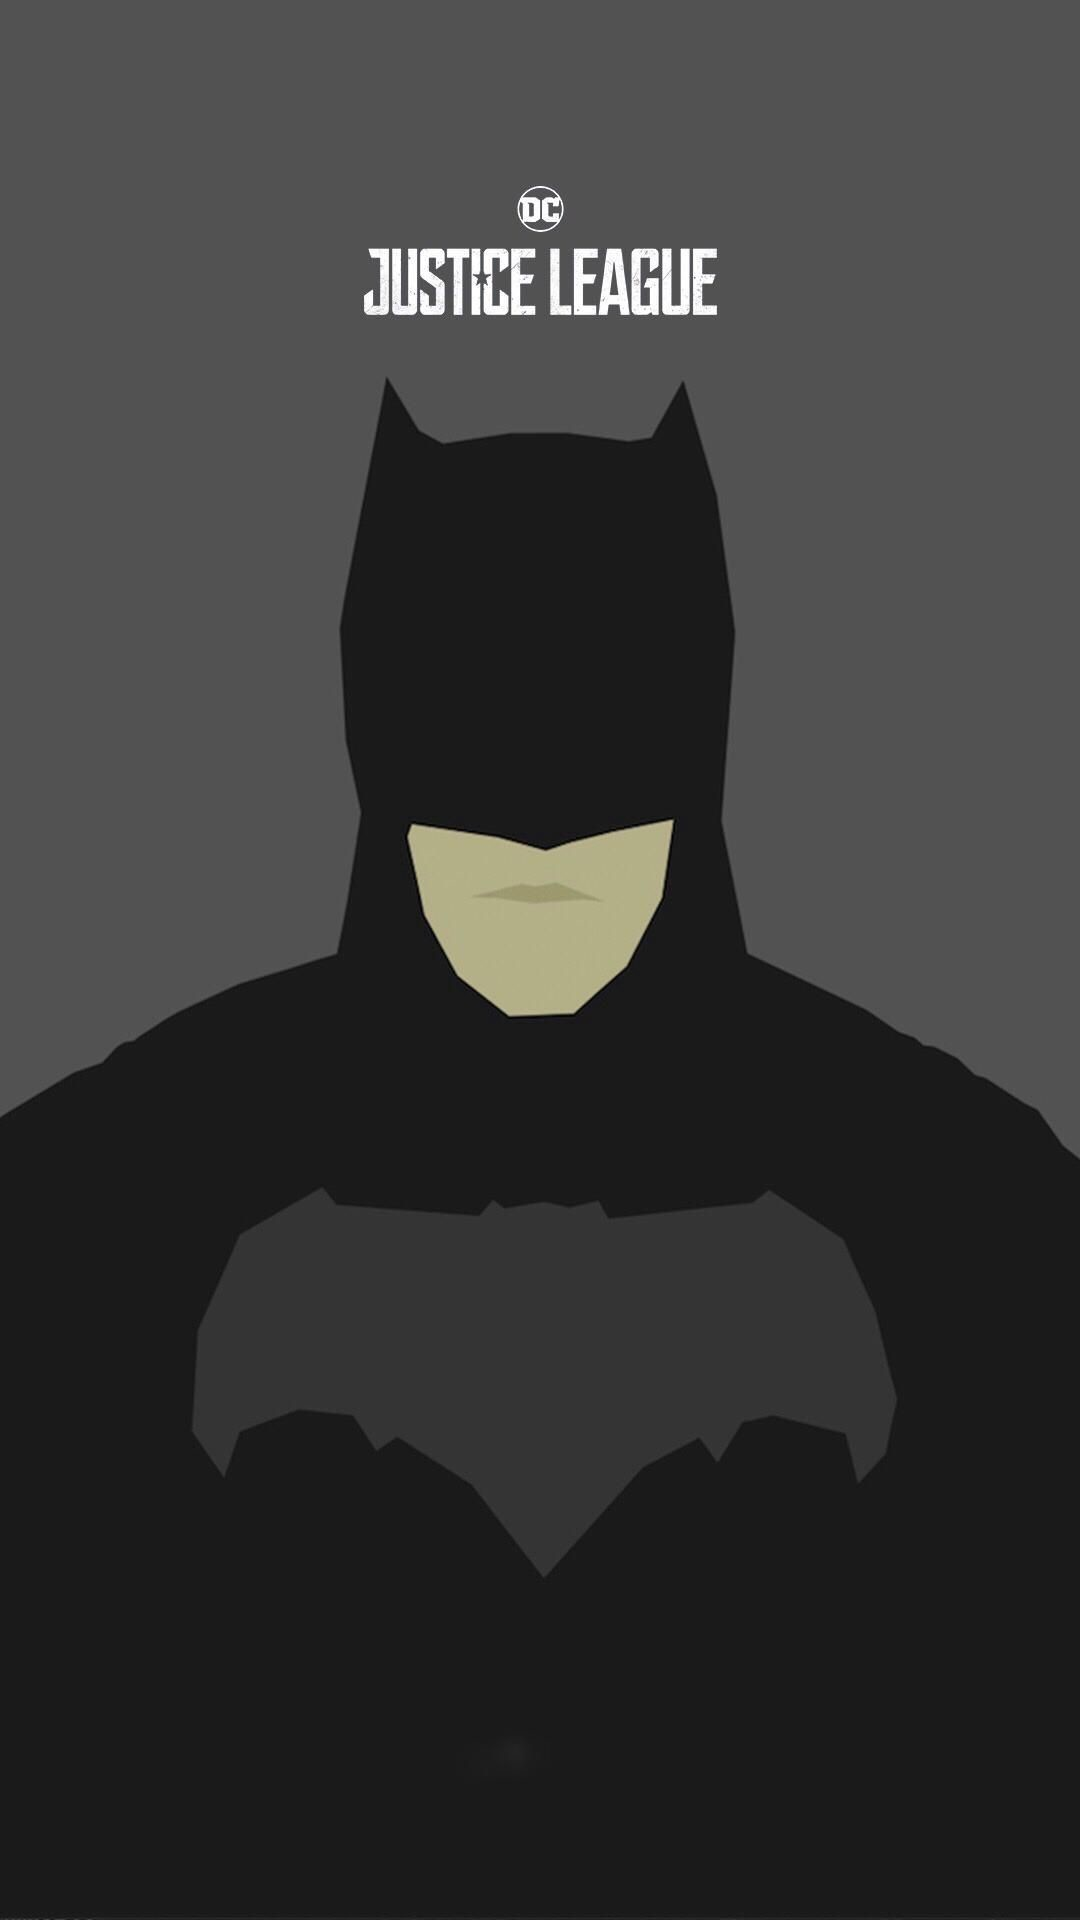 1080x1920 DC Justice League: Batman Download at: http://www.myfavwallpaper.